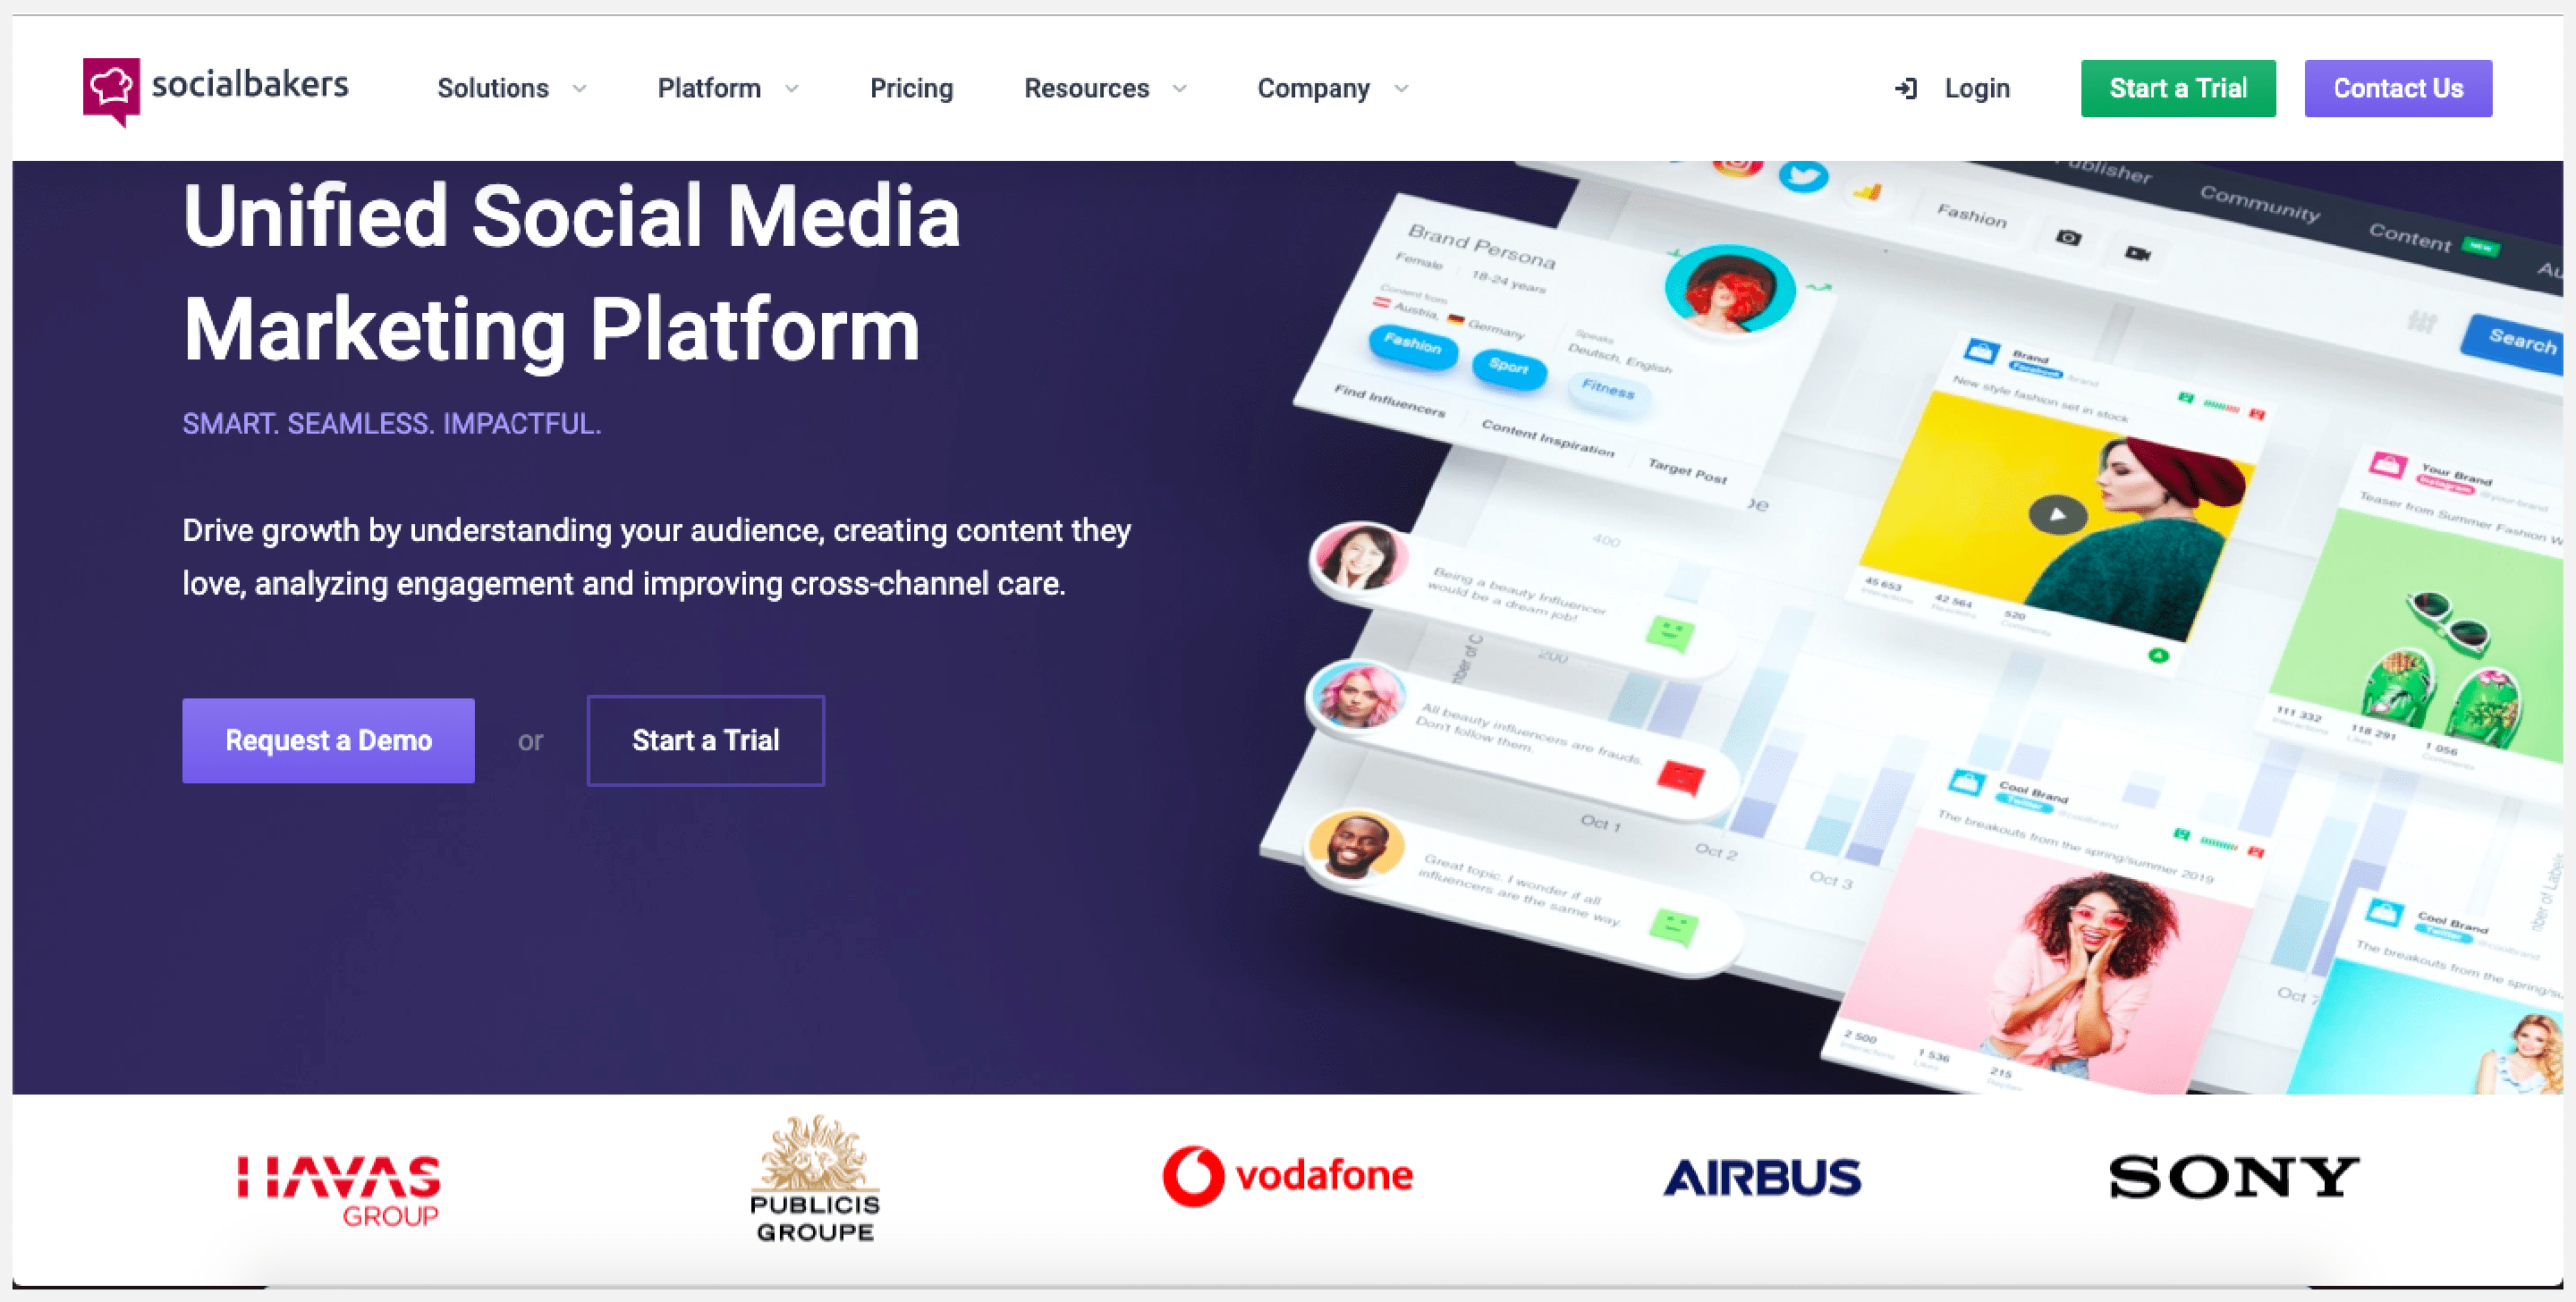 Socialbakers is an AI-enabled social media management software.